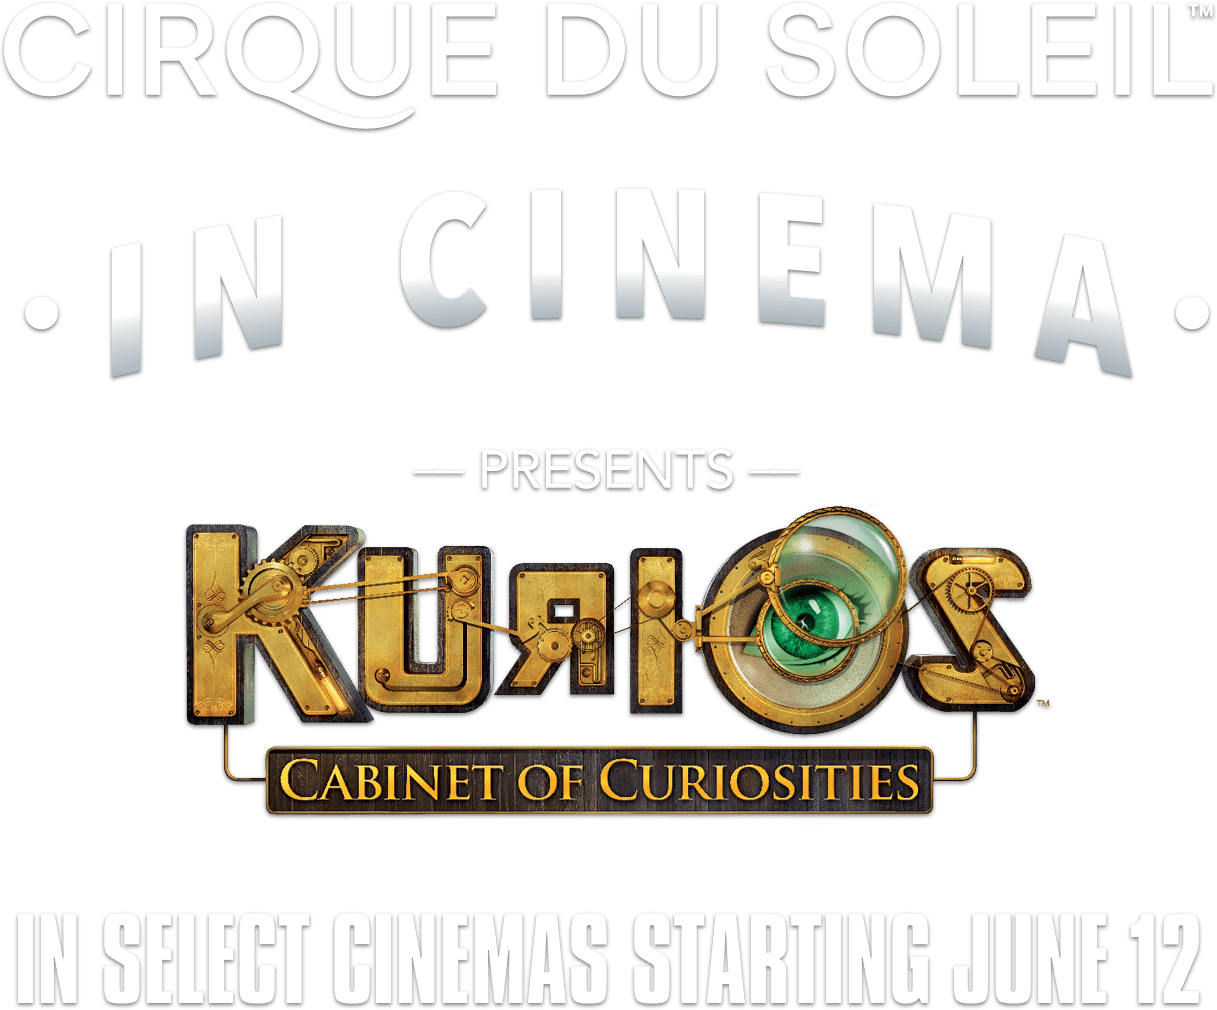 Cirque du Soleil in Cinema Presents KURIOS – Cabinet of Curiosities